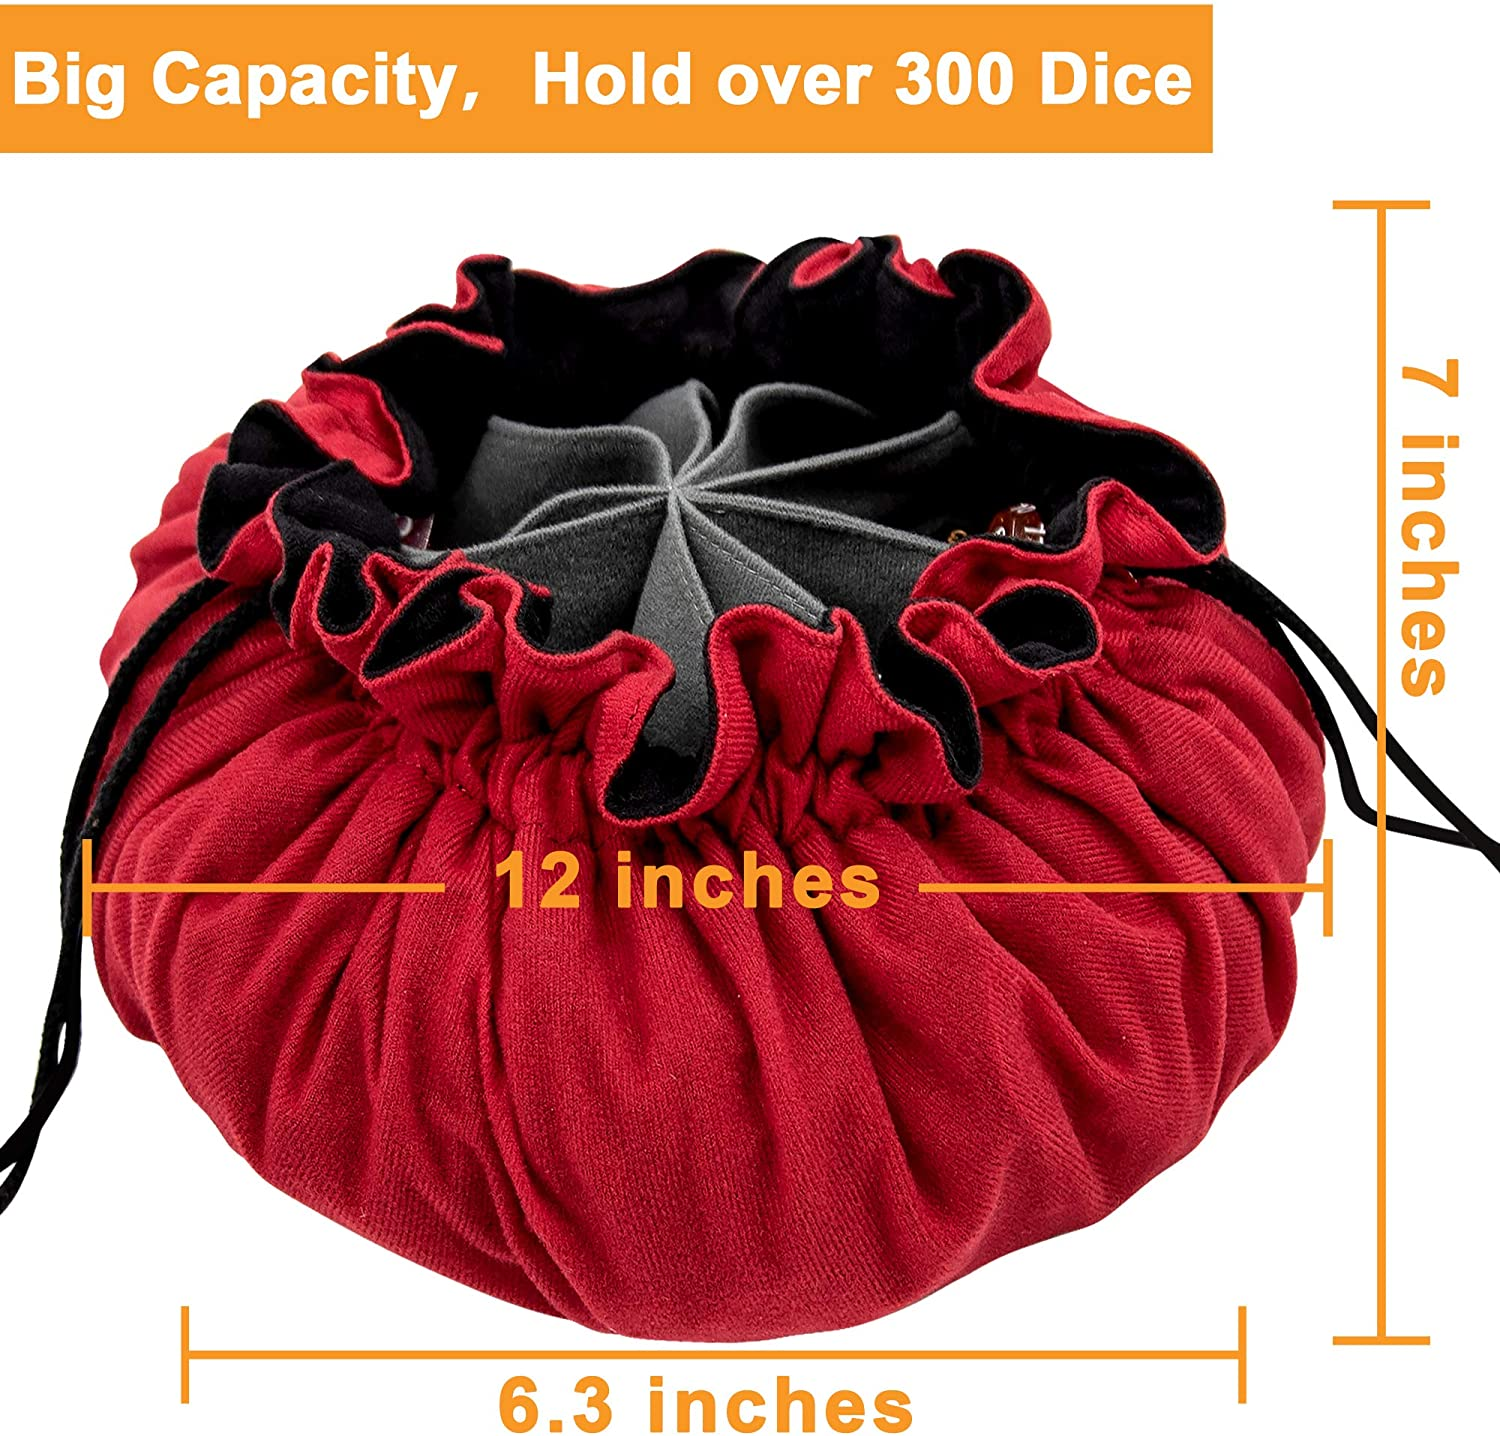 Hold over 300 Dice Red SIQUK Dice Bag with Pockets Big Capacity Dice Storage Bag for DND RPG MTG Table Games